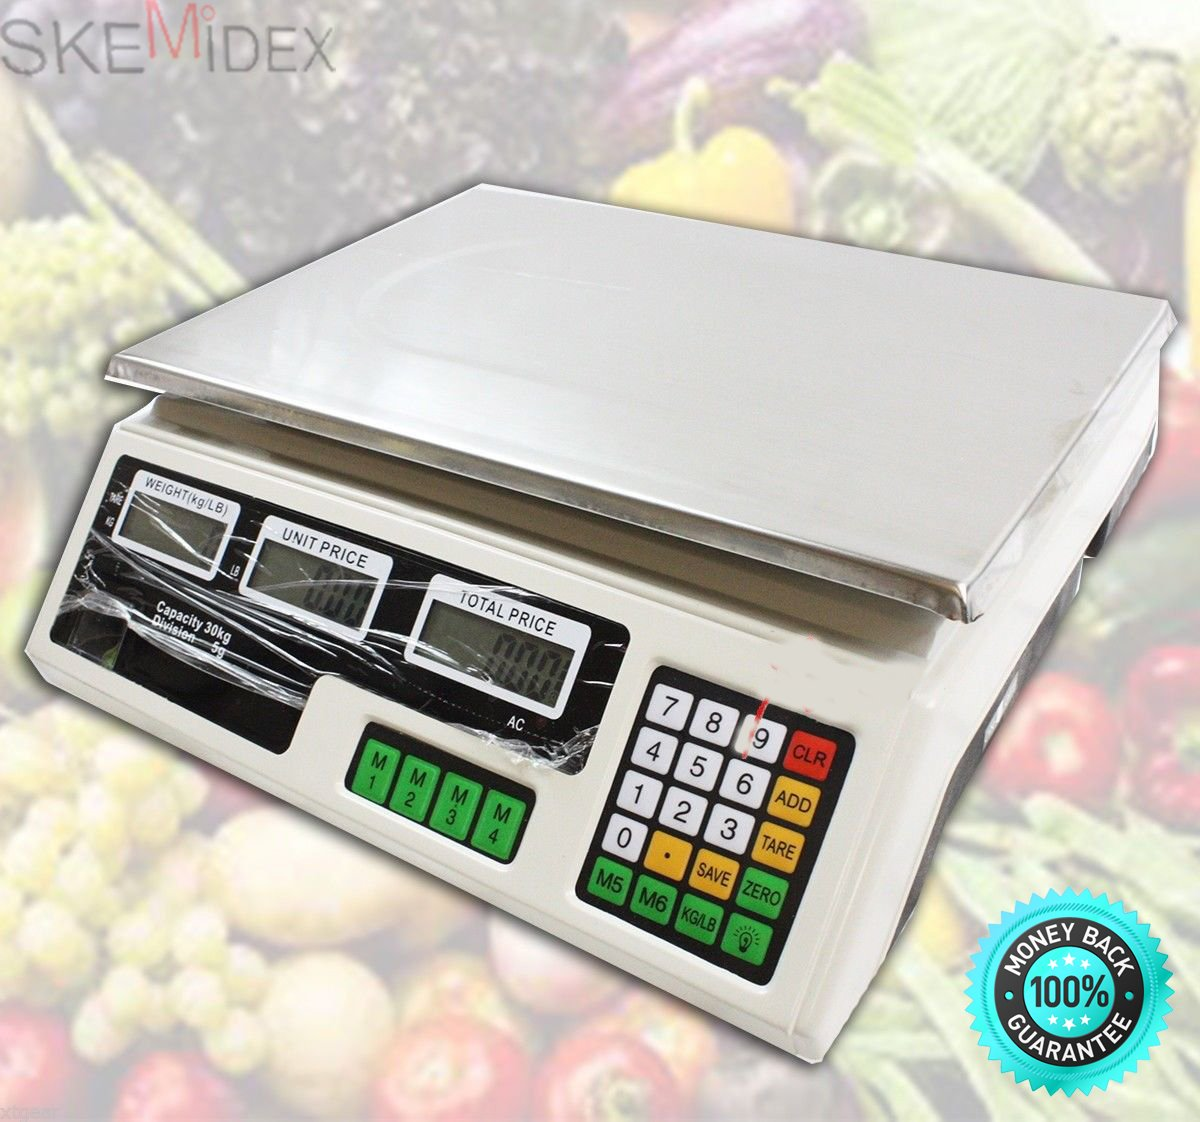 SKEMiDEX---66LB 30KG FRONT AND BACK DIGITAL PRICE DELI FOOD MEAT COMPUTING SCALE. Lightweight and durable front and back digital display for customer viewing Easy to clean stainless steel top